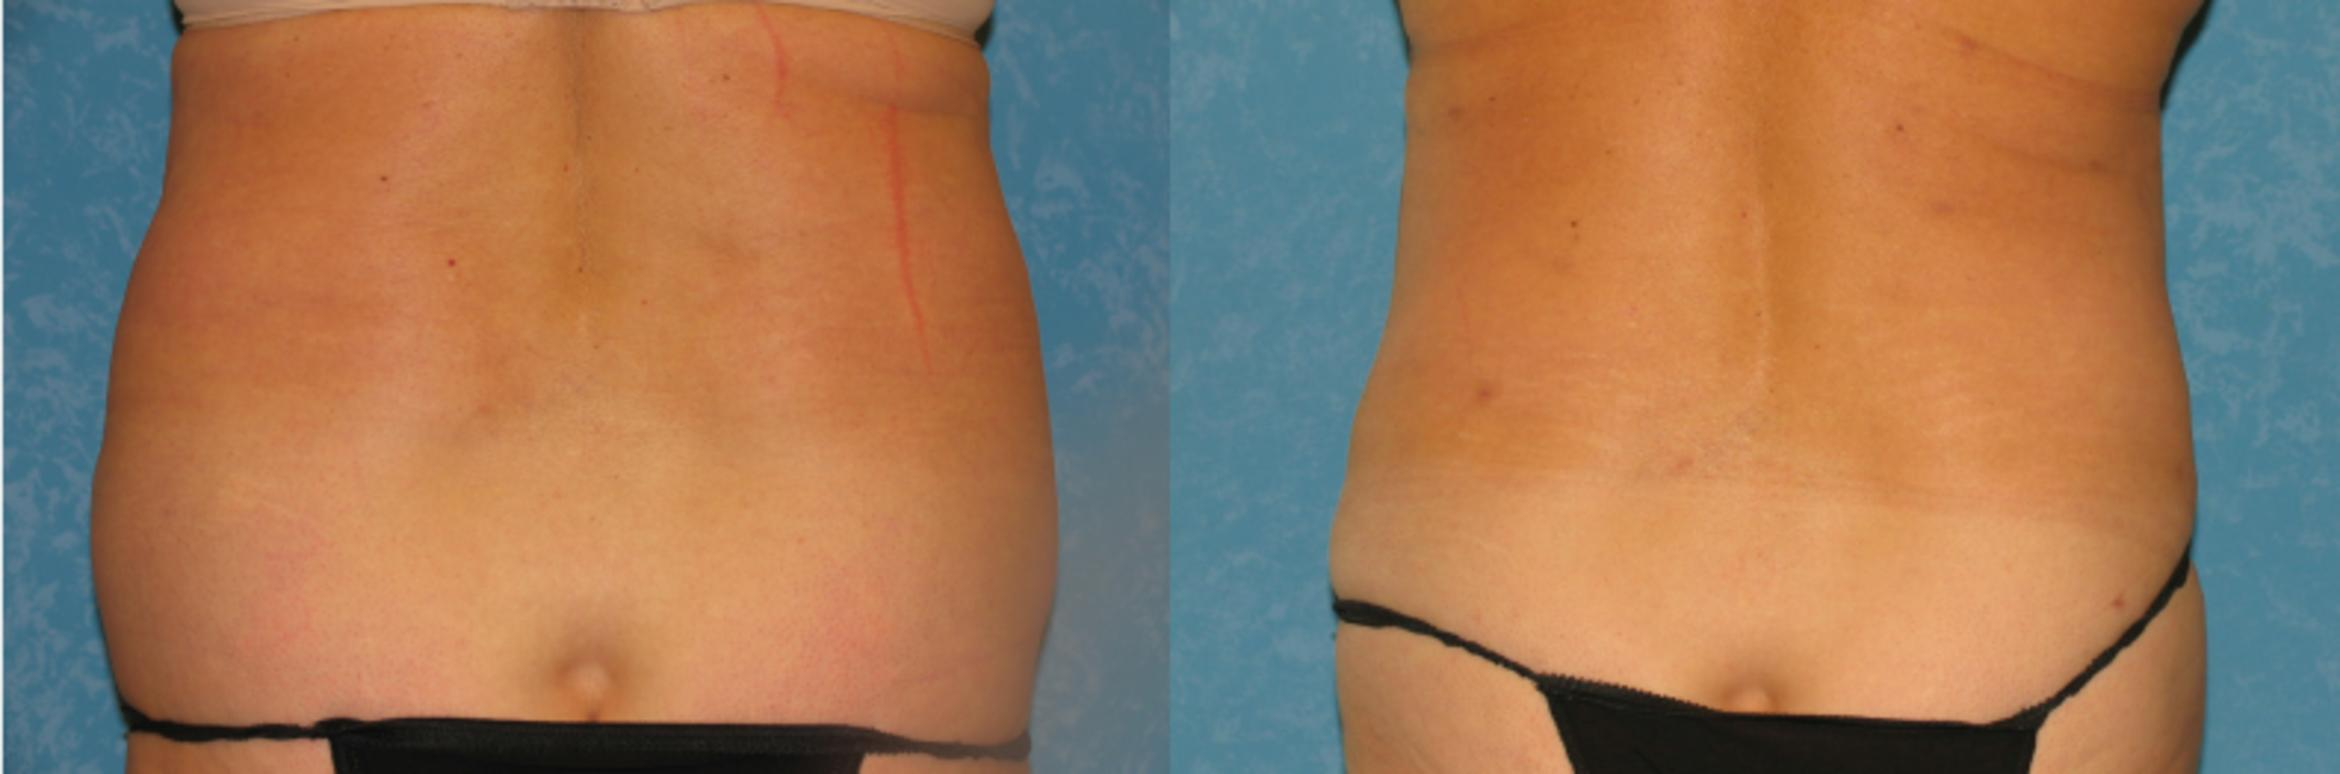 Liposuction Before & After Photo | Toledo, Ohio | Dr. Craig Colville